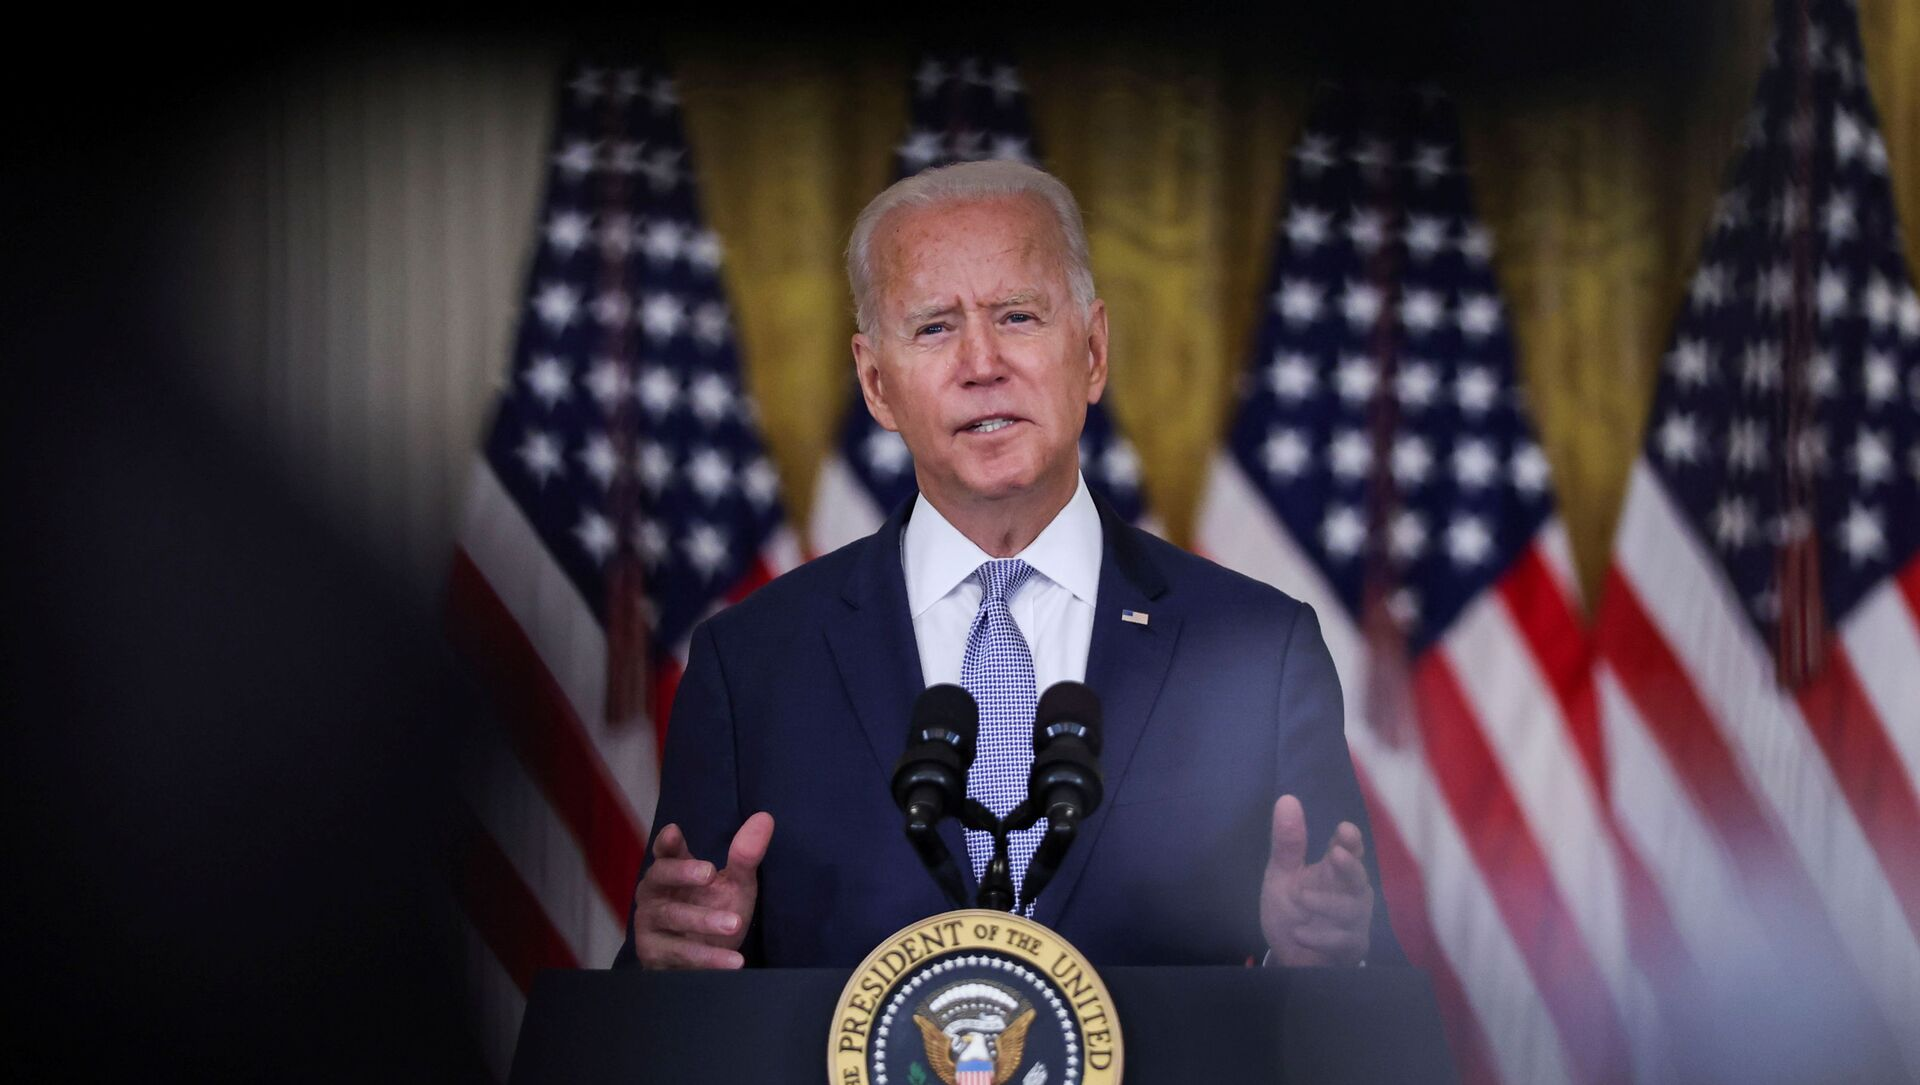 U.S. President Joe Biden discusses his 'Build Back Better' agenda and administration efforts to lower prescription drug prices during a speech in the East Room at the White House in Washington, U.S., August 12, 2021 - Sputnik International, 1920, 18.08.2021